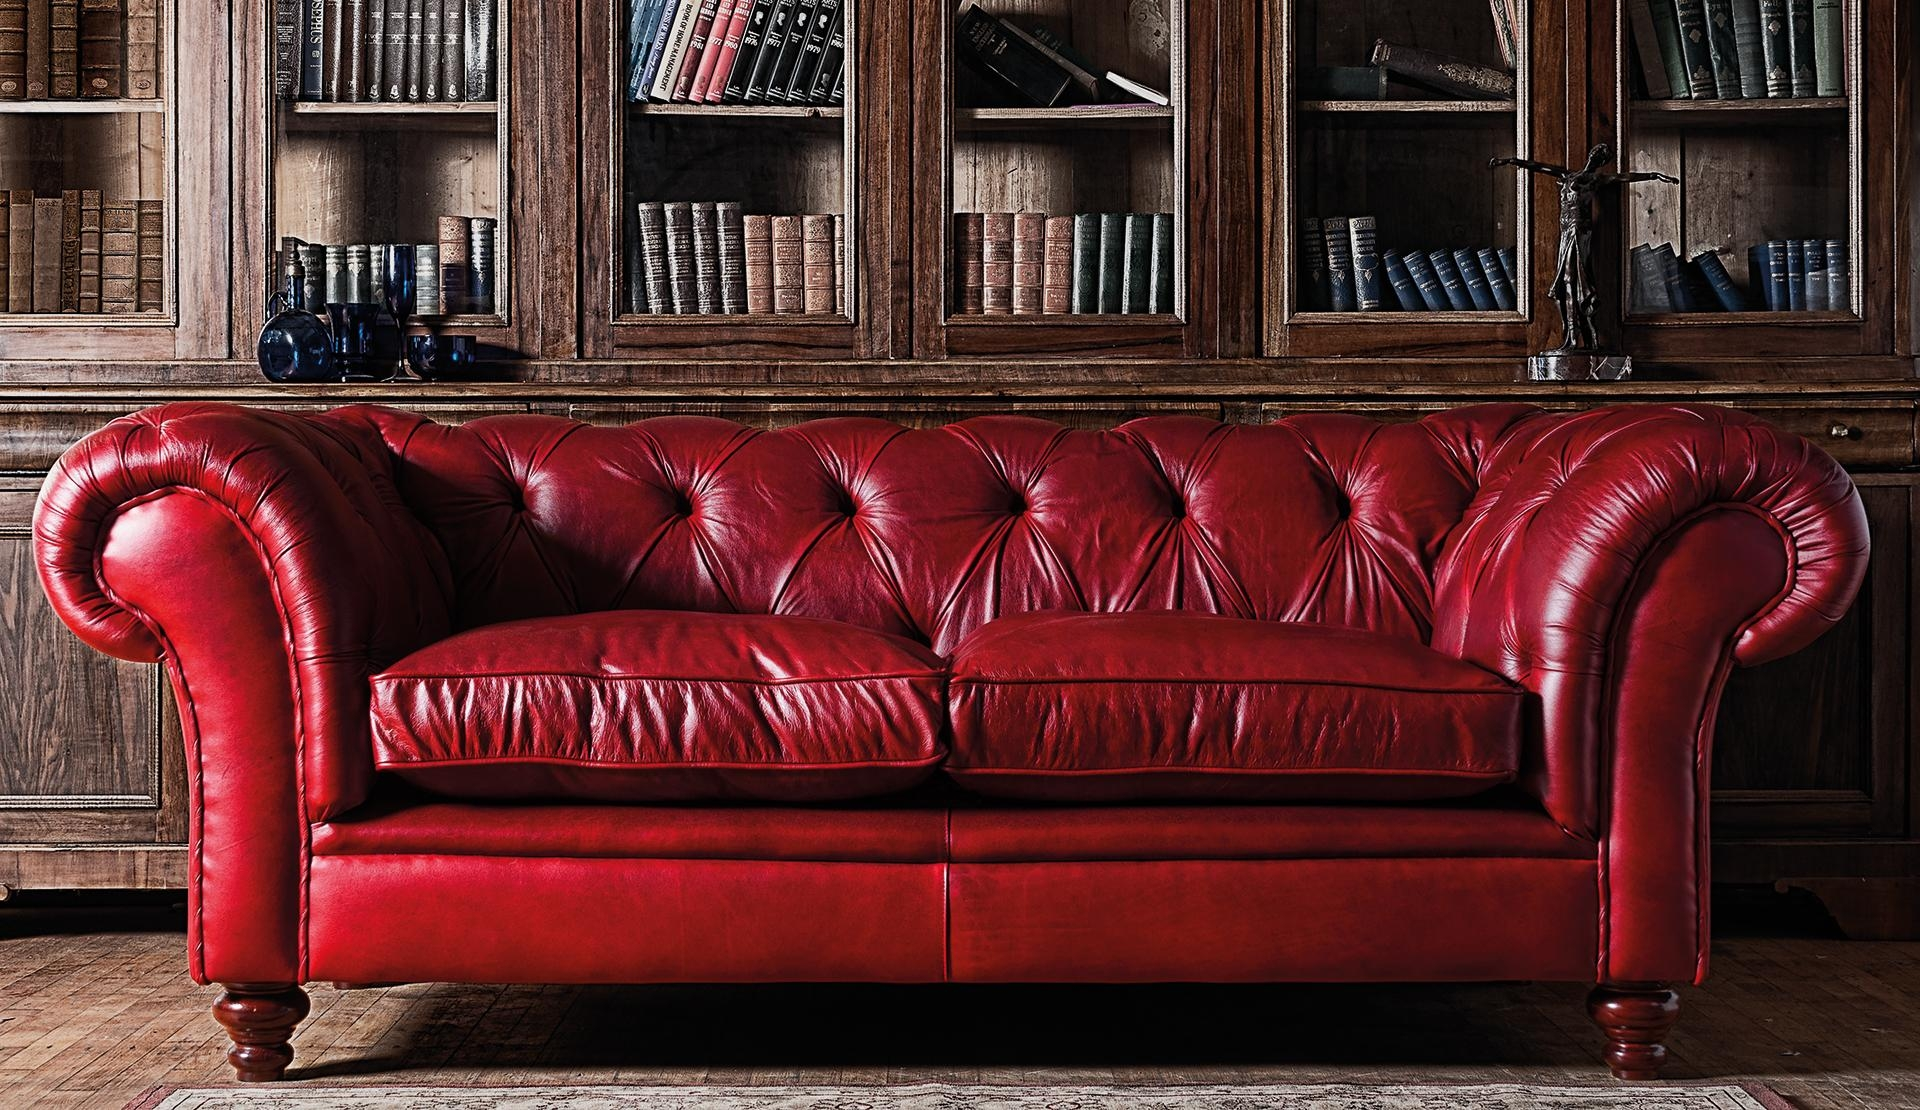 Red Leather Chesterfield Sofa | Sofa Gallery | Kengire For Red Leather Chesterfield Sofas (Image 8 of 20)